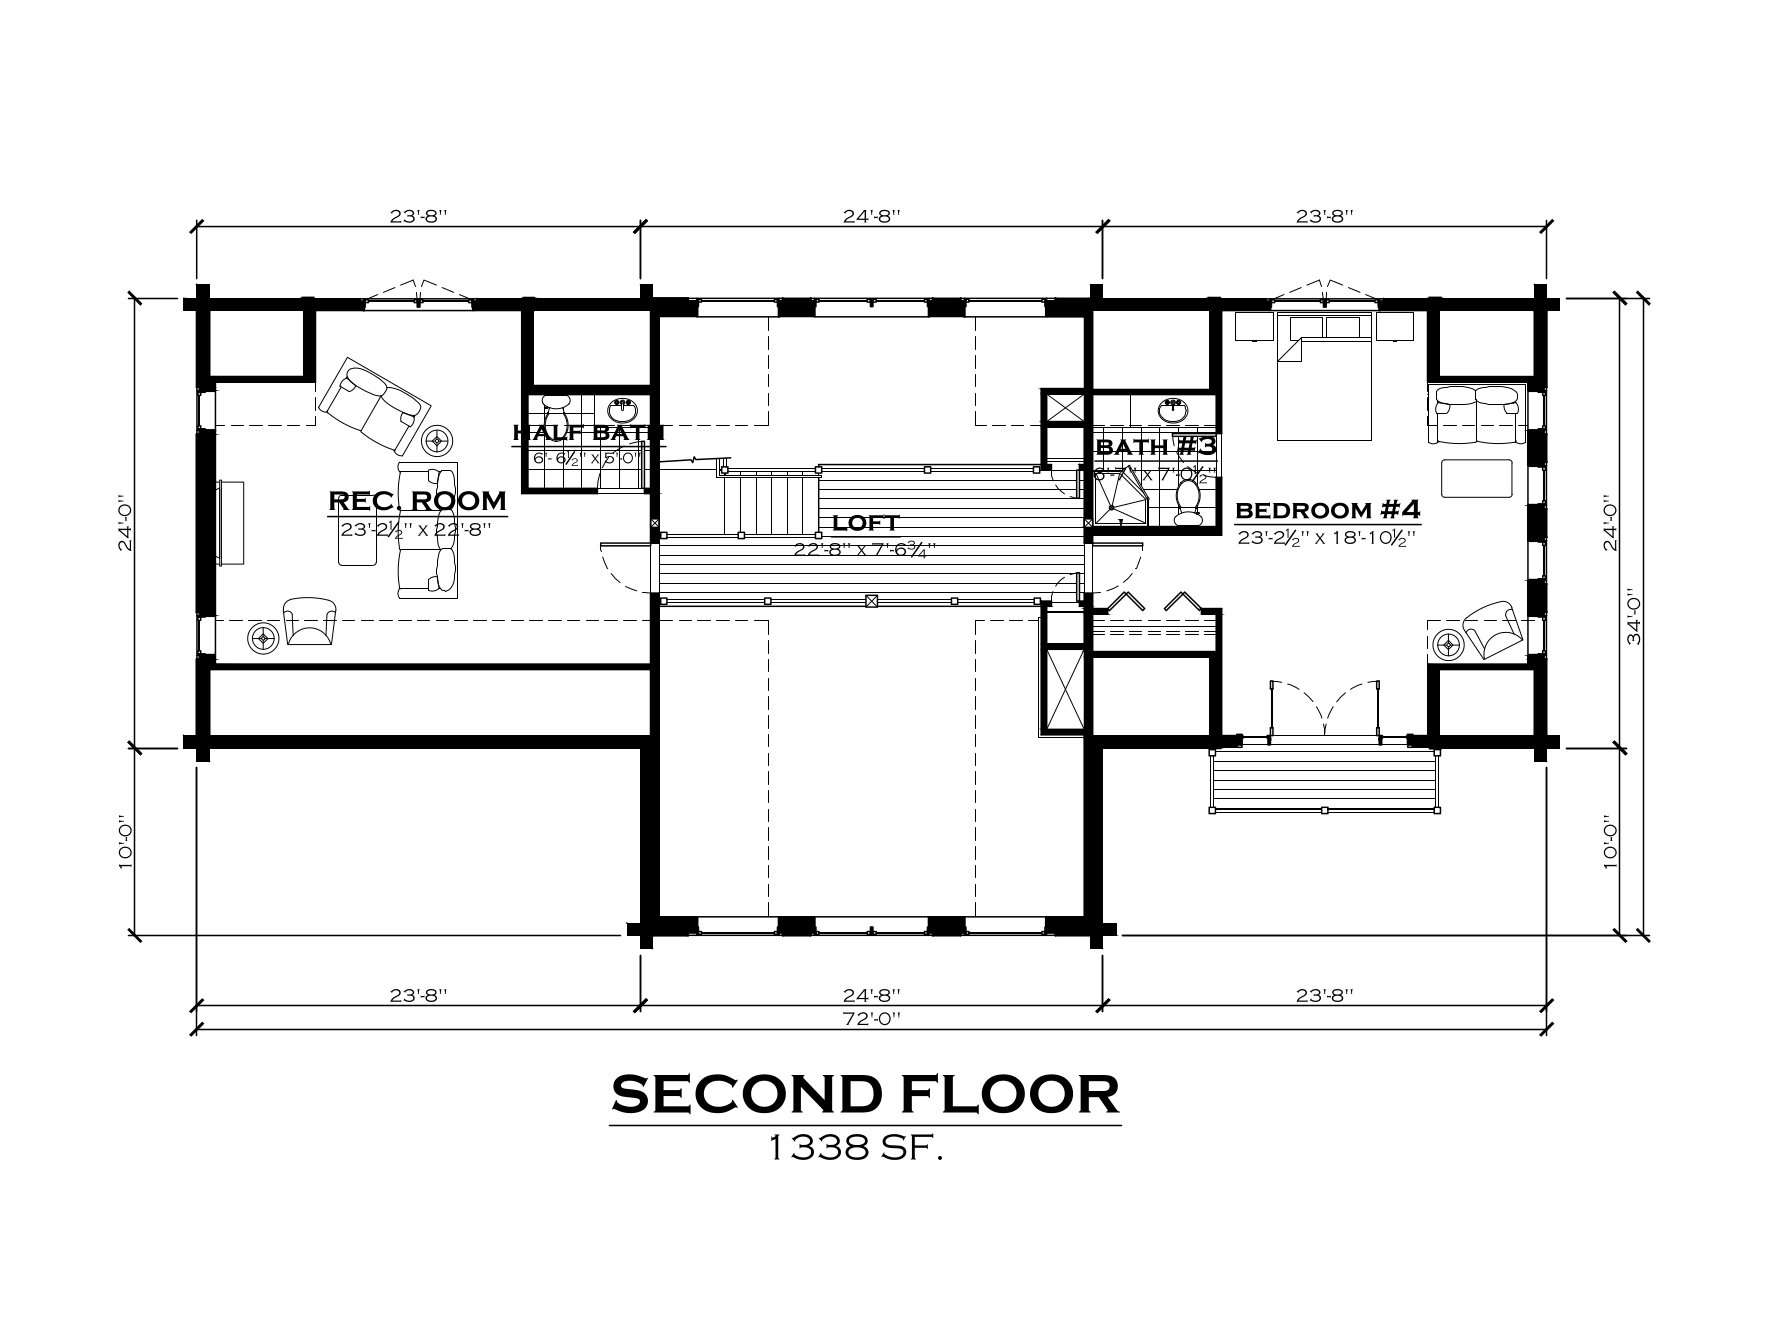 EverLog Systems the Clark Fork Second Floor Plan